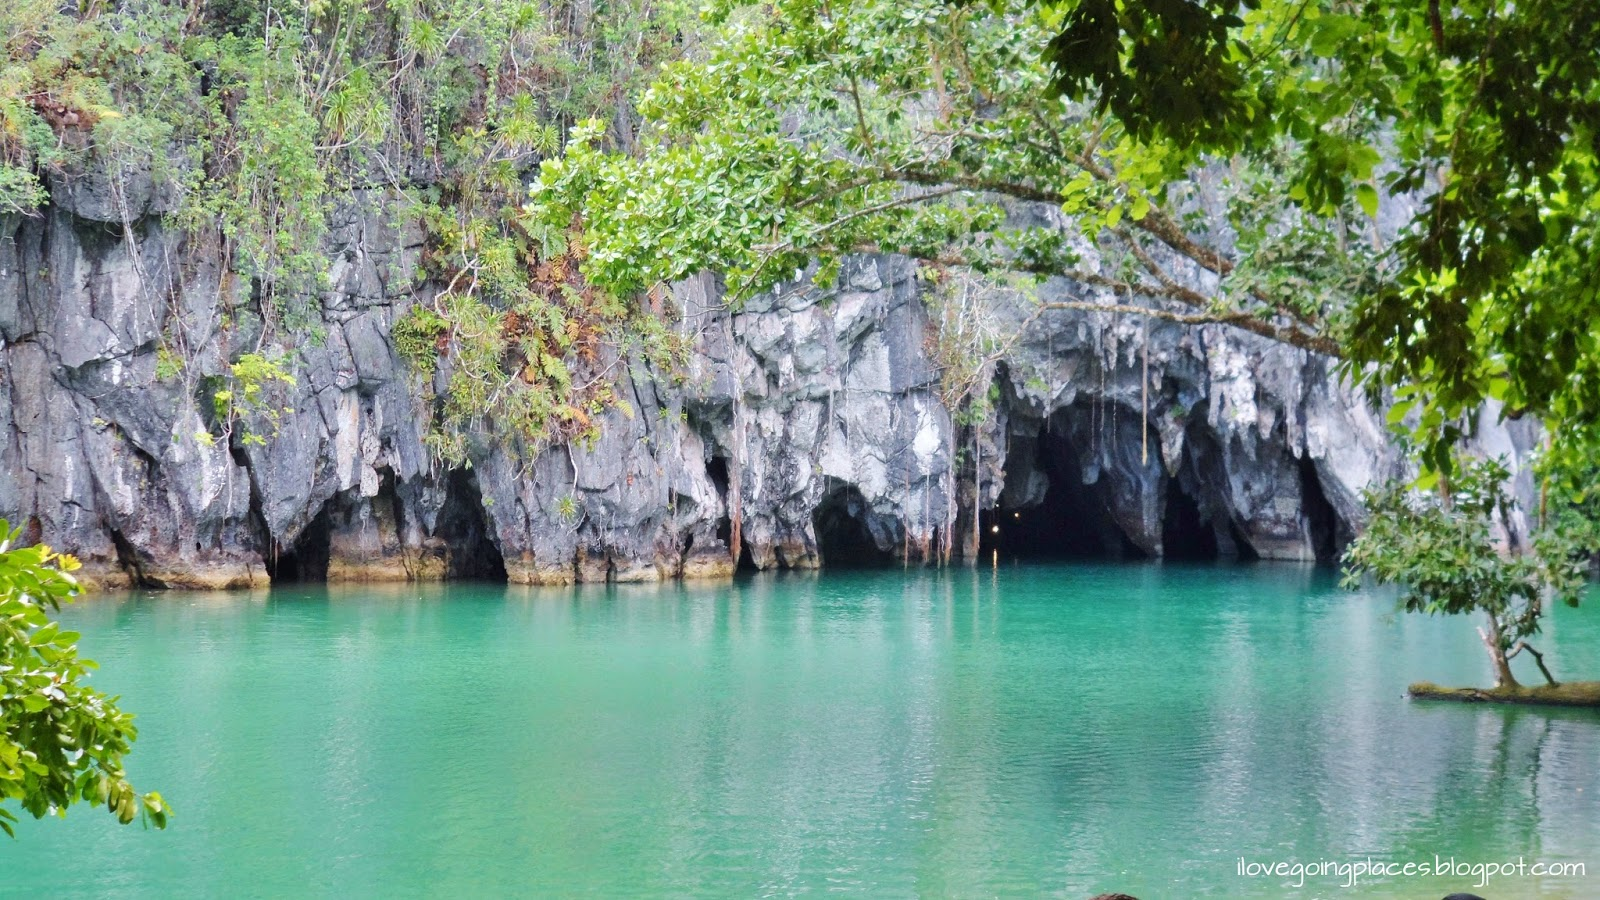 puerto princesa palawan R oads self drive car and van rental in puerto princesa palawan philippines roads to the two main areas of the island palawan - el nido and sabang (underground river) has already been done.